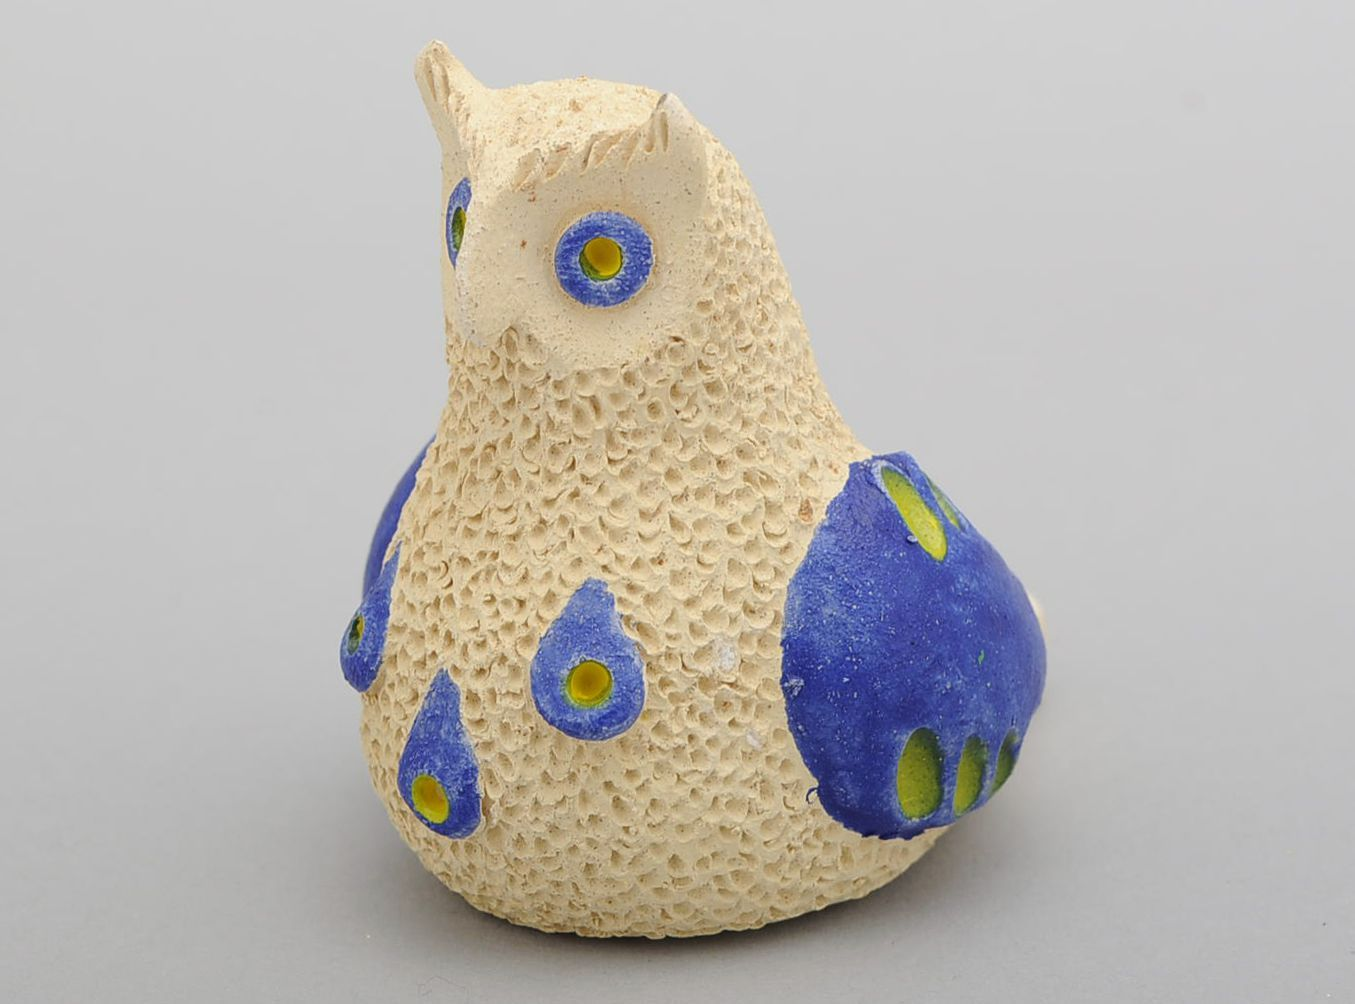 Penny whistle in the form of owl made of clay photo 1